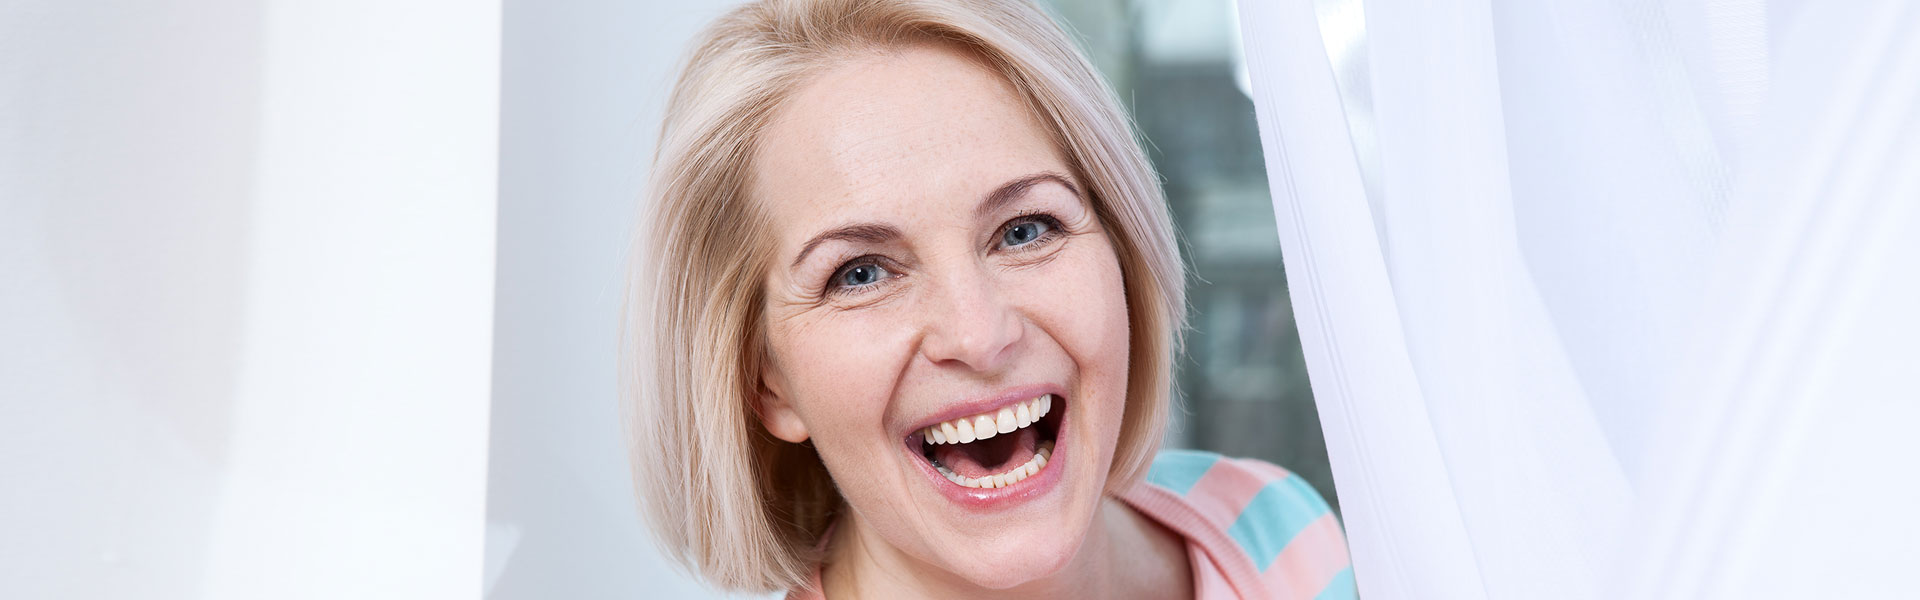 Are Dentures A Good Tooth Replacement Option?